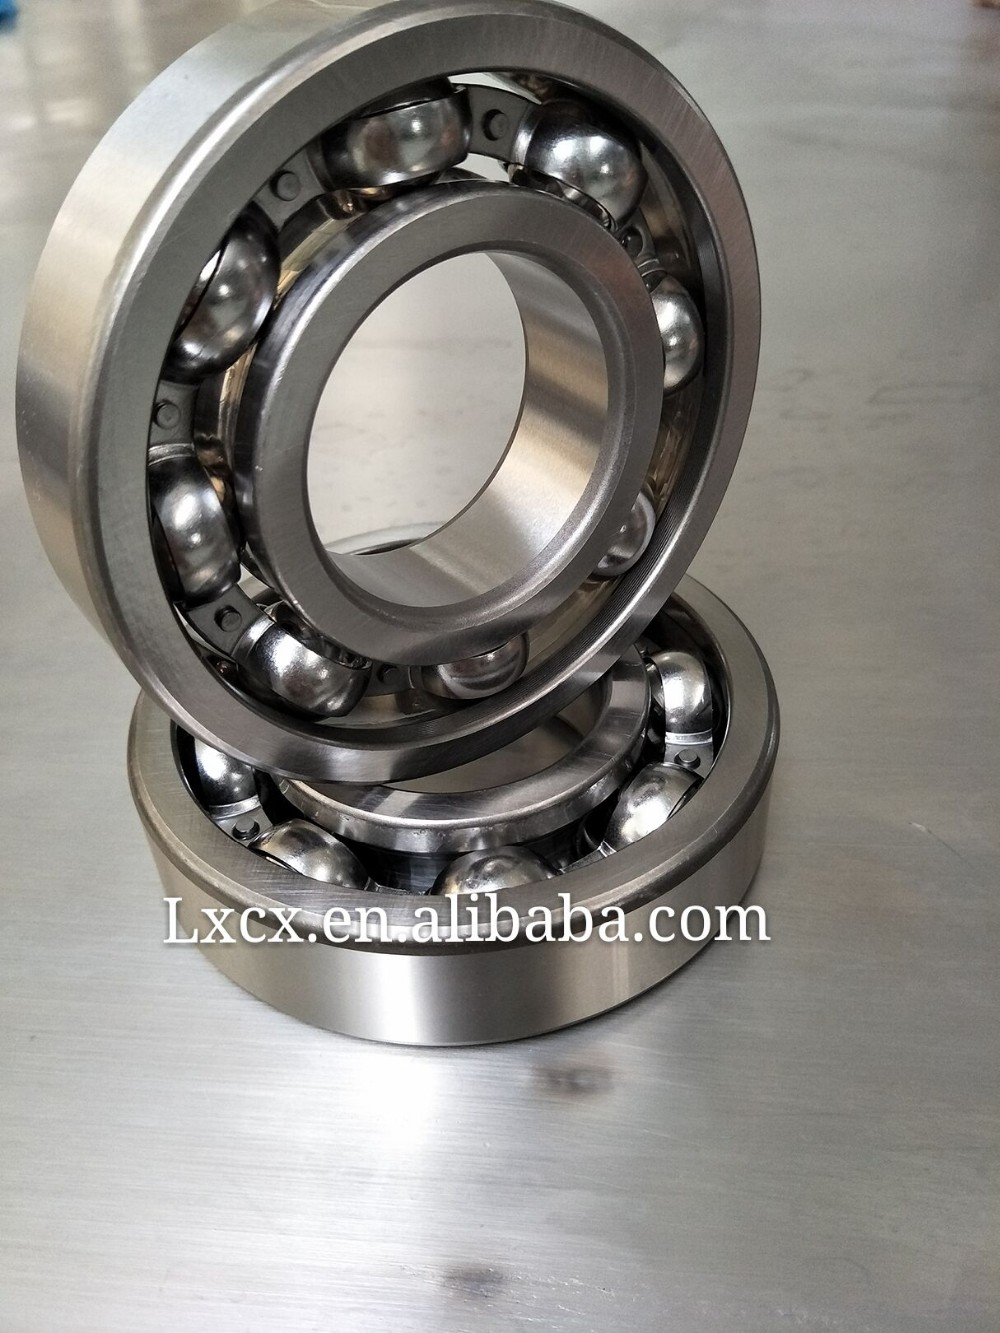 Quality bearing Low price deep groove ball bearing 6026(130*200*33mm)OPEN Z ZZ N RZ RS 2RZ 2RS Manufacture factory